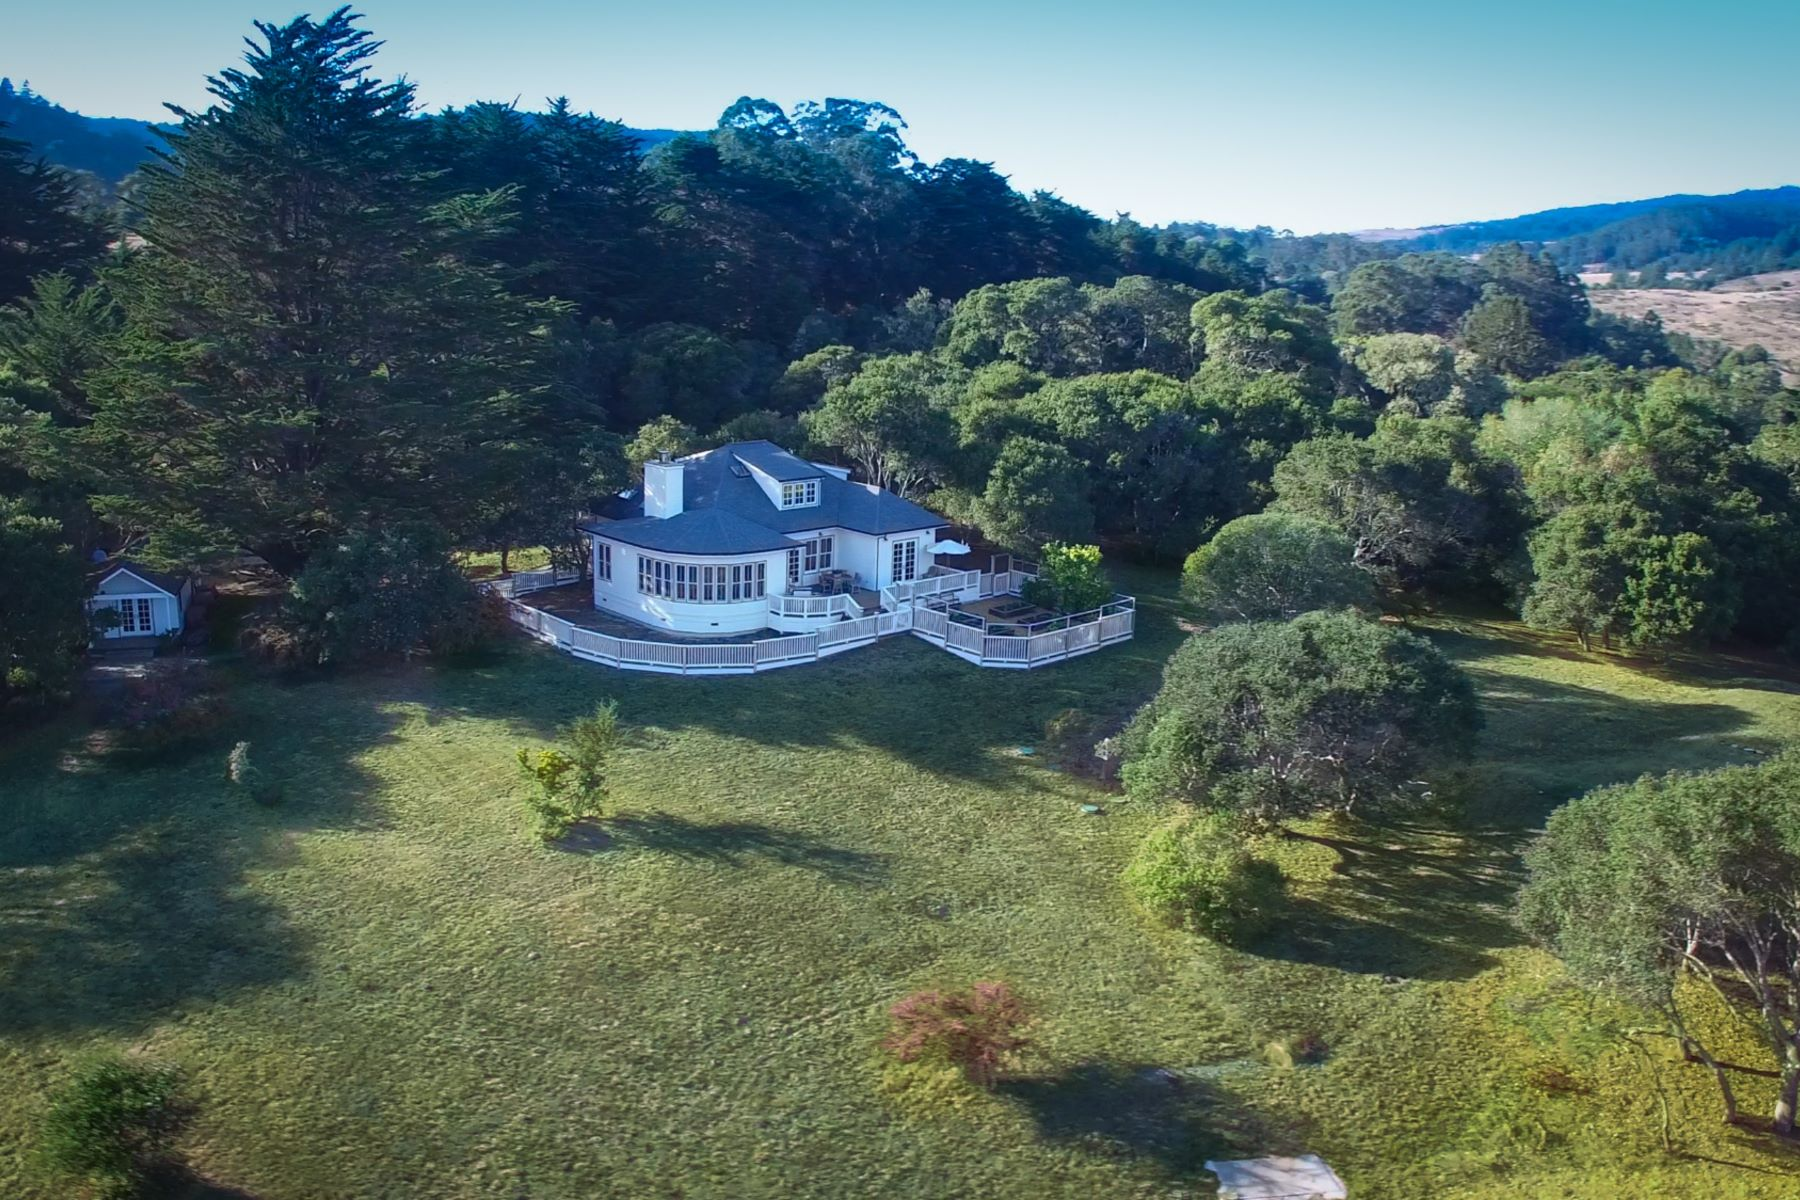 Земля для того Продажа на An epic Bolinas setting for both family and friends 330 - 280 Horseshoe Hill Road Bolinas, Калифорния 94924 Соединенные Штаты